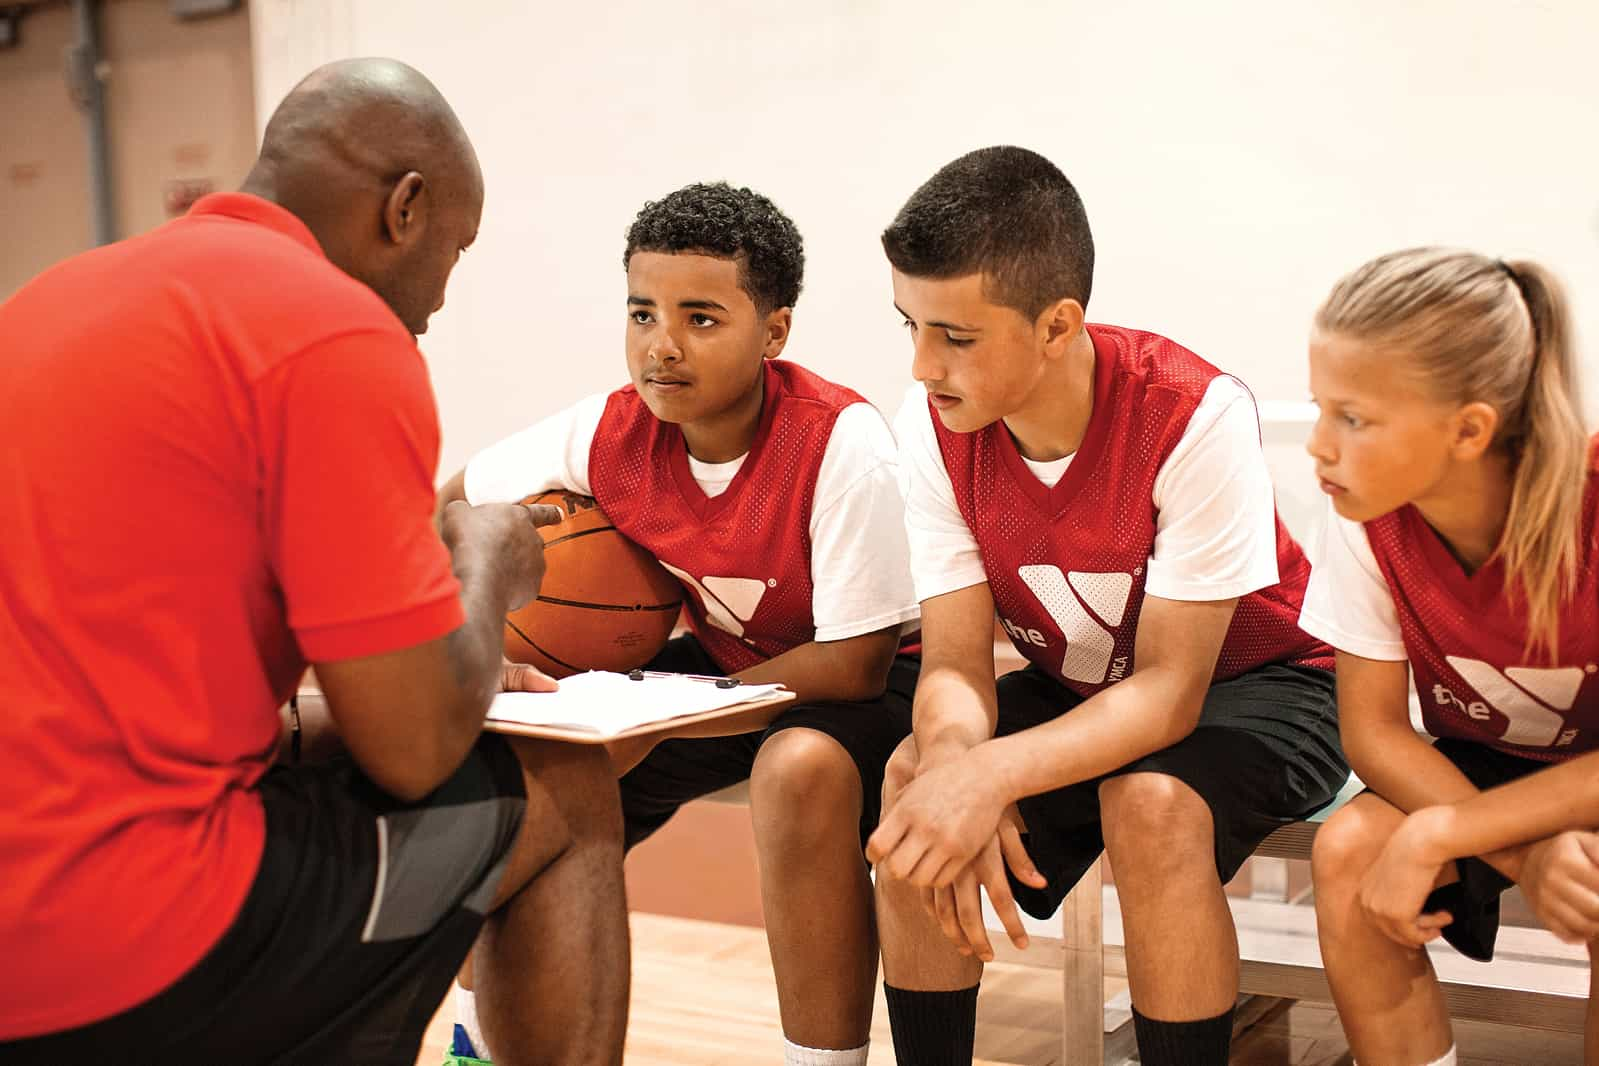 Coach instructing basketball athletes